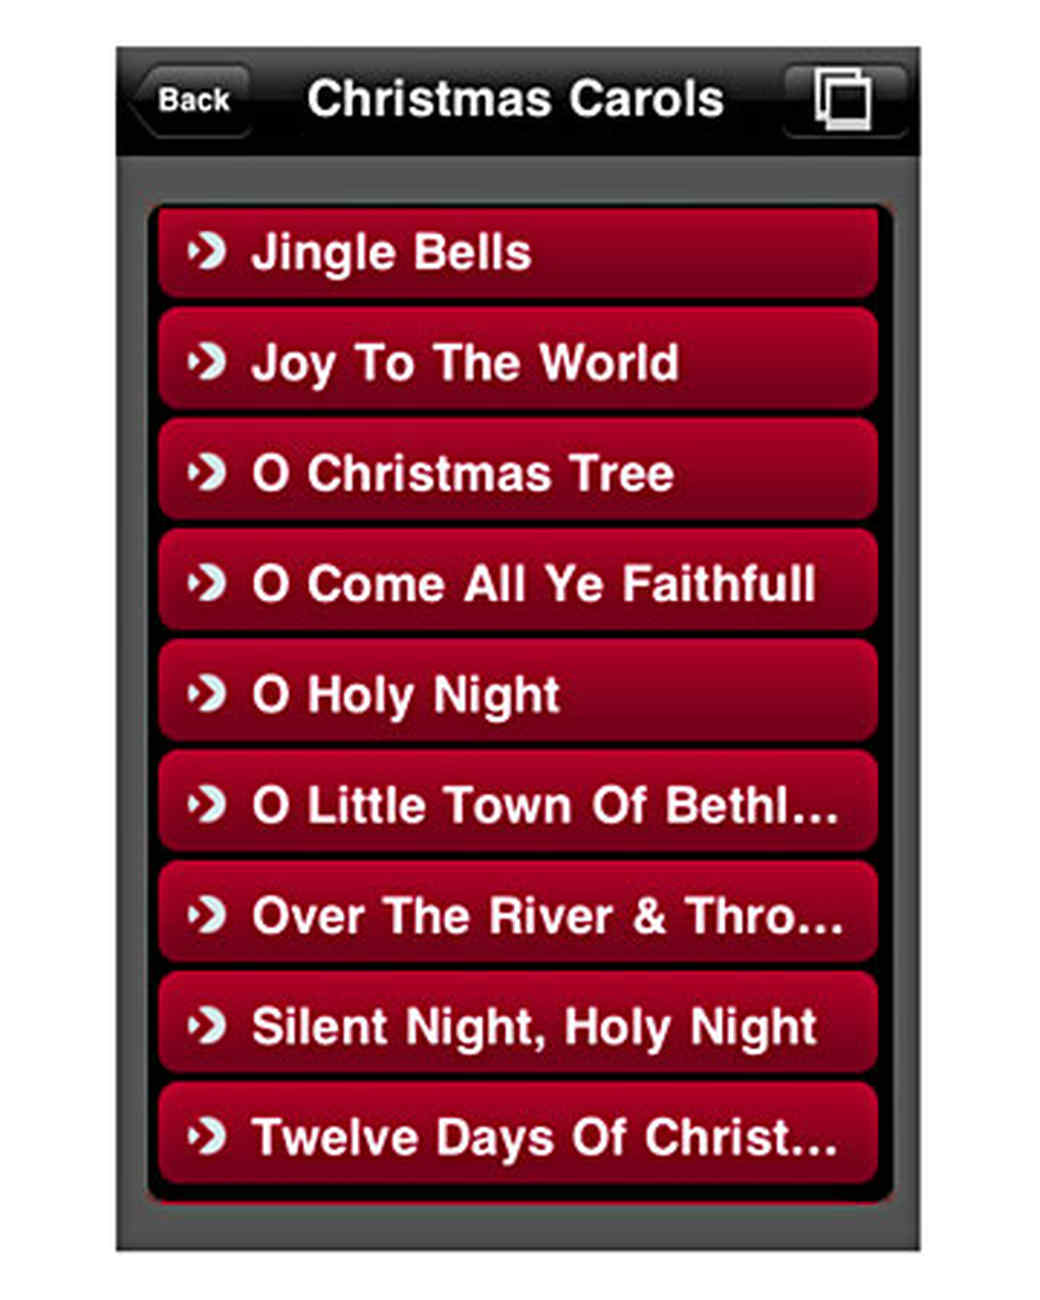 iphone_apps_chrismtascarols.jpg